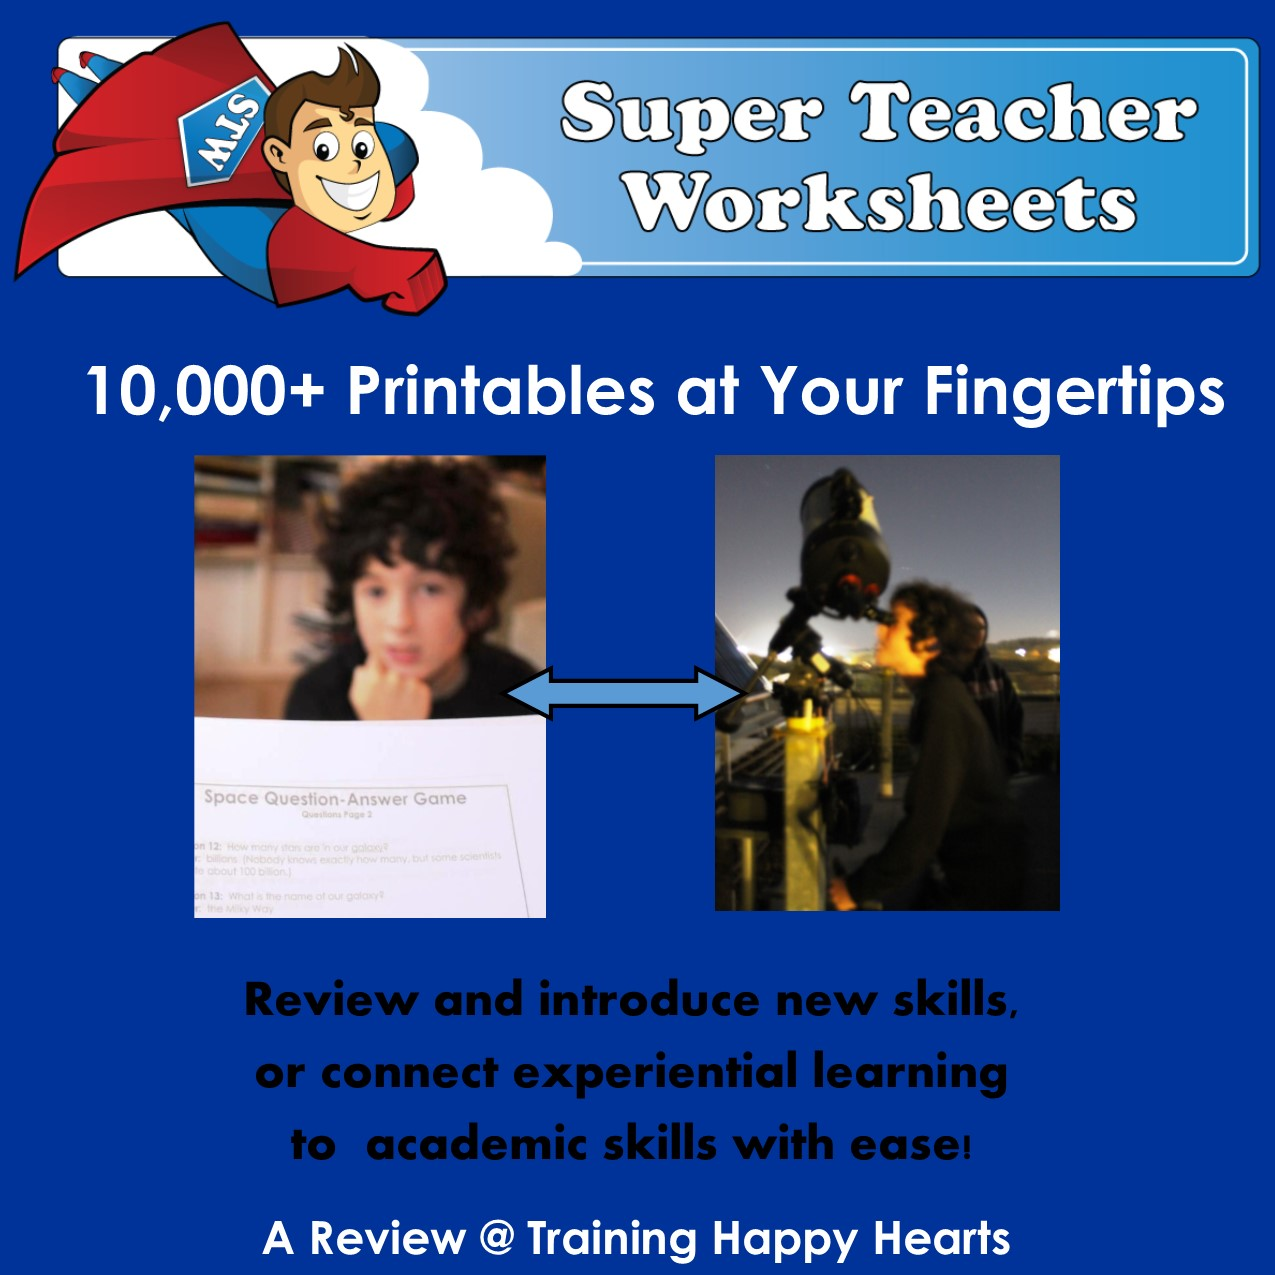 Training Happy Hearts: Super Teacher Worksheets for the Win!